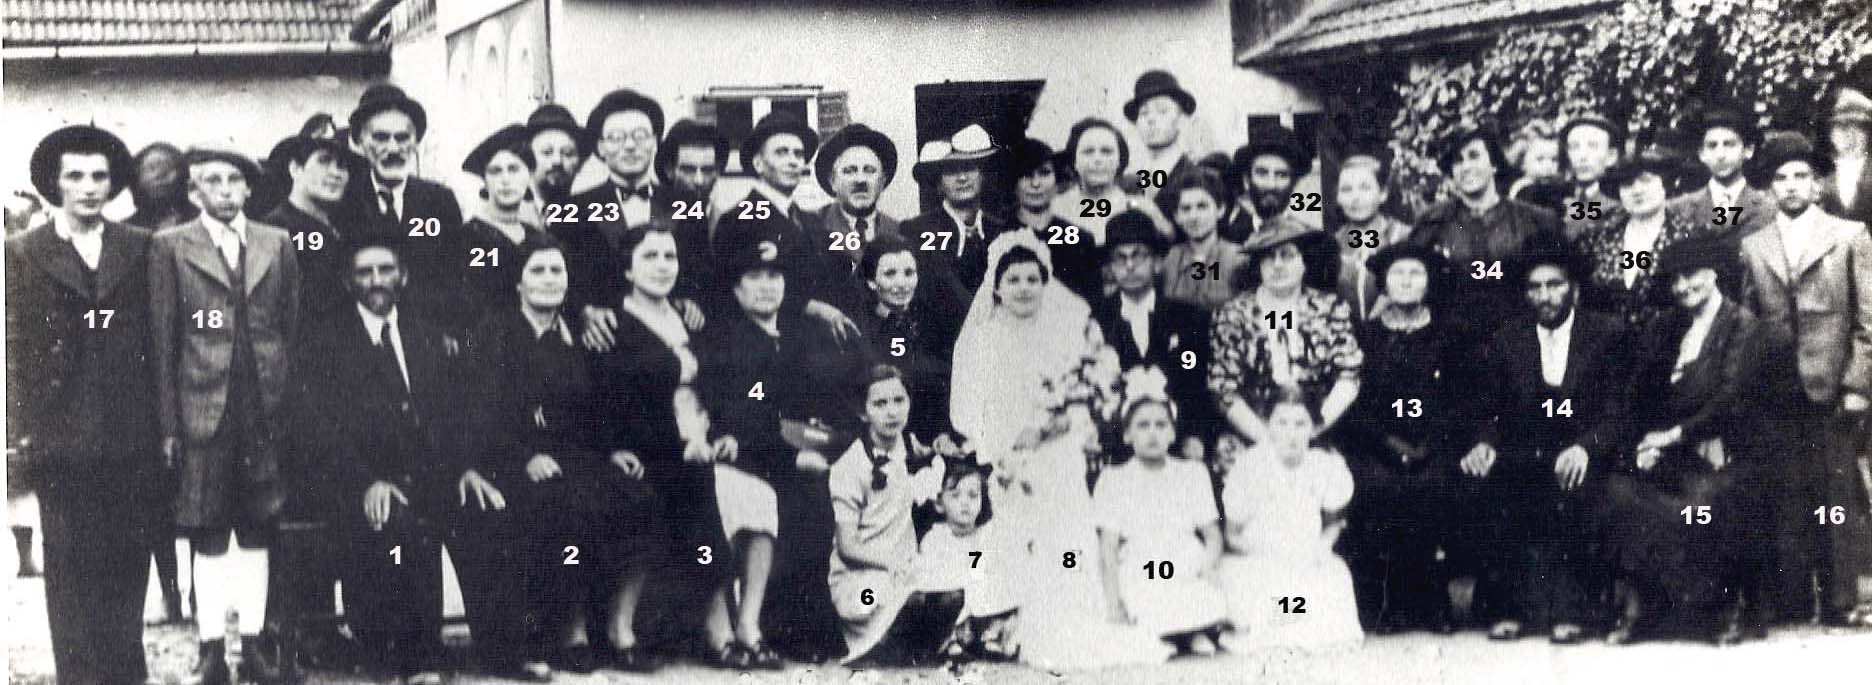 Fried Adolf Abraham and Wertheimer Erzsebet Wedding.